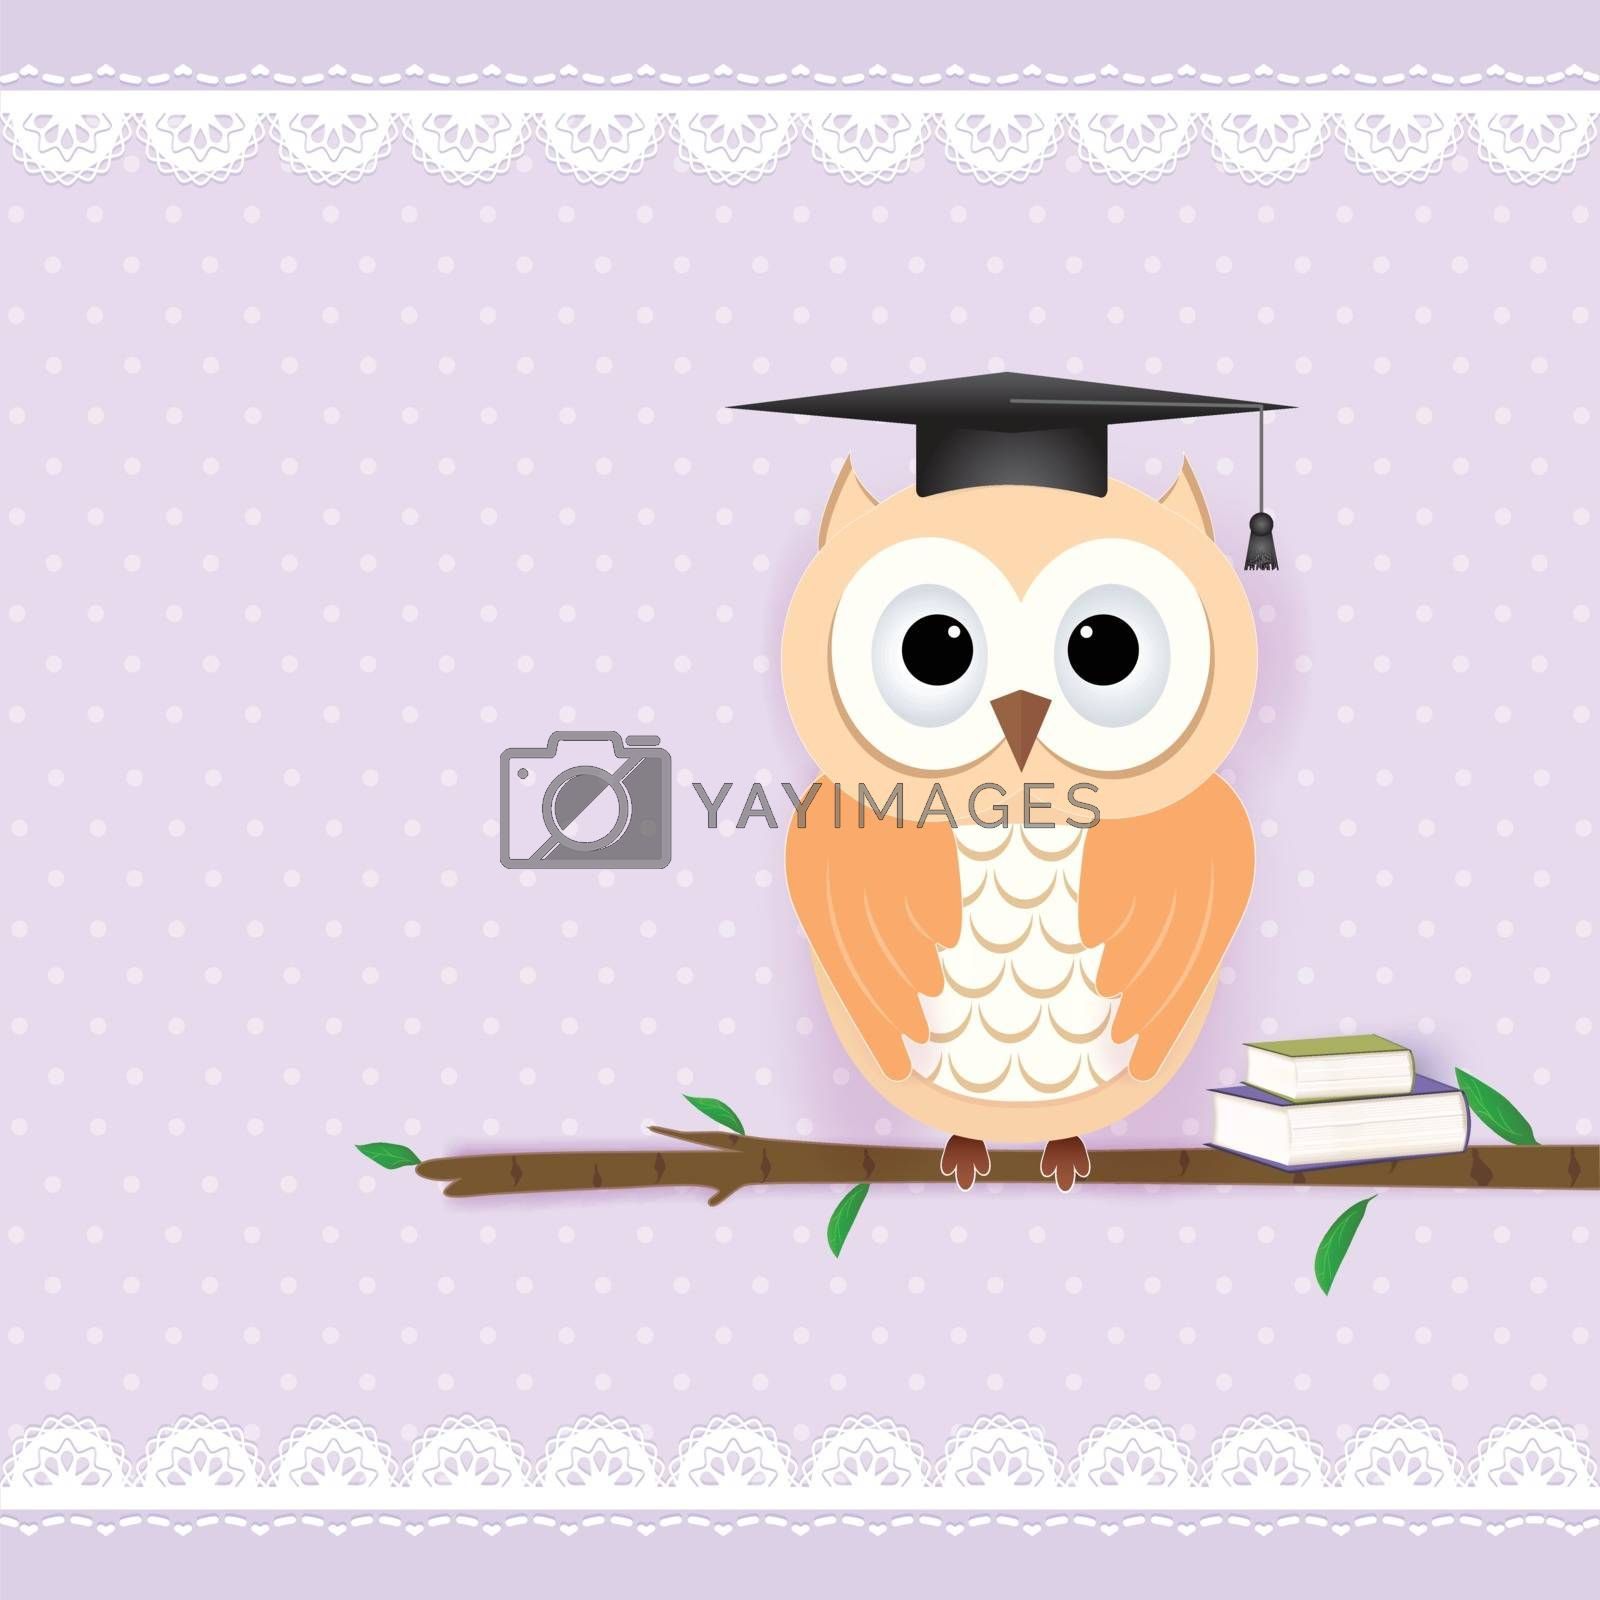 Owl on purple for Greeting card, Baby shower card with paper art style illustration